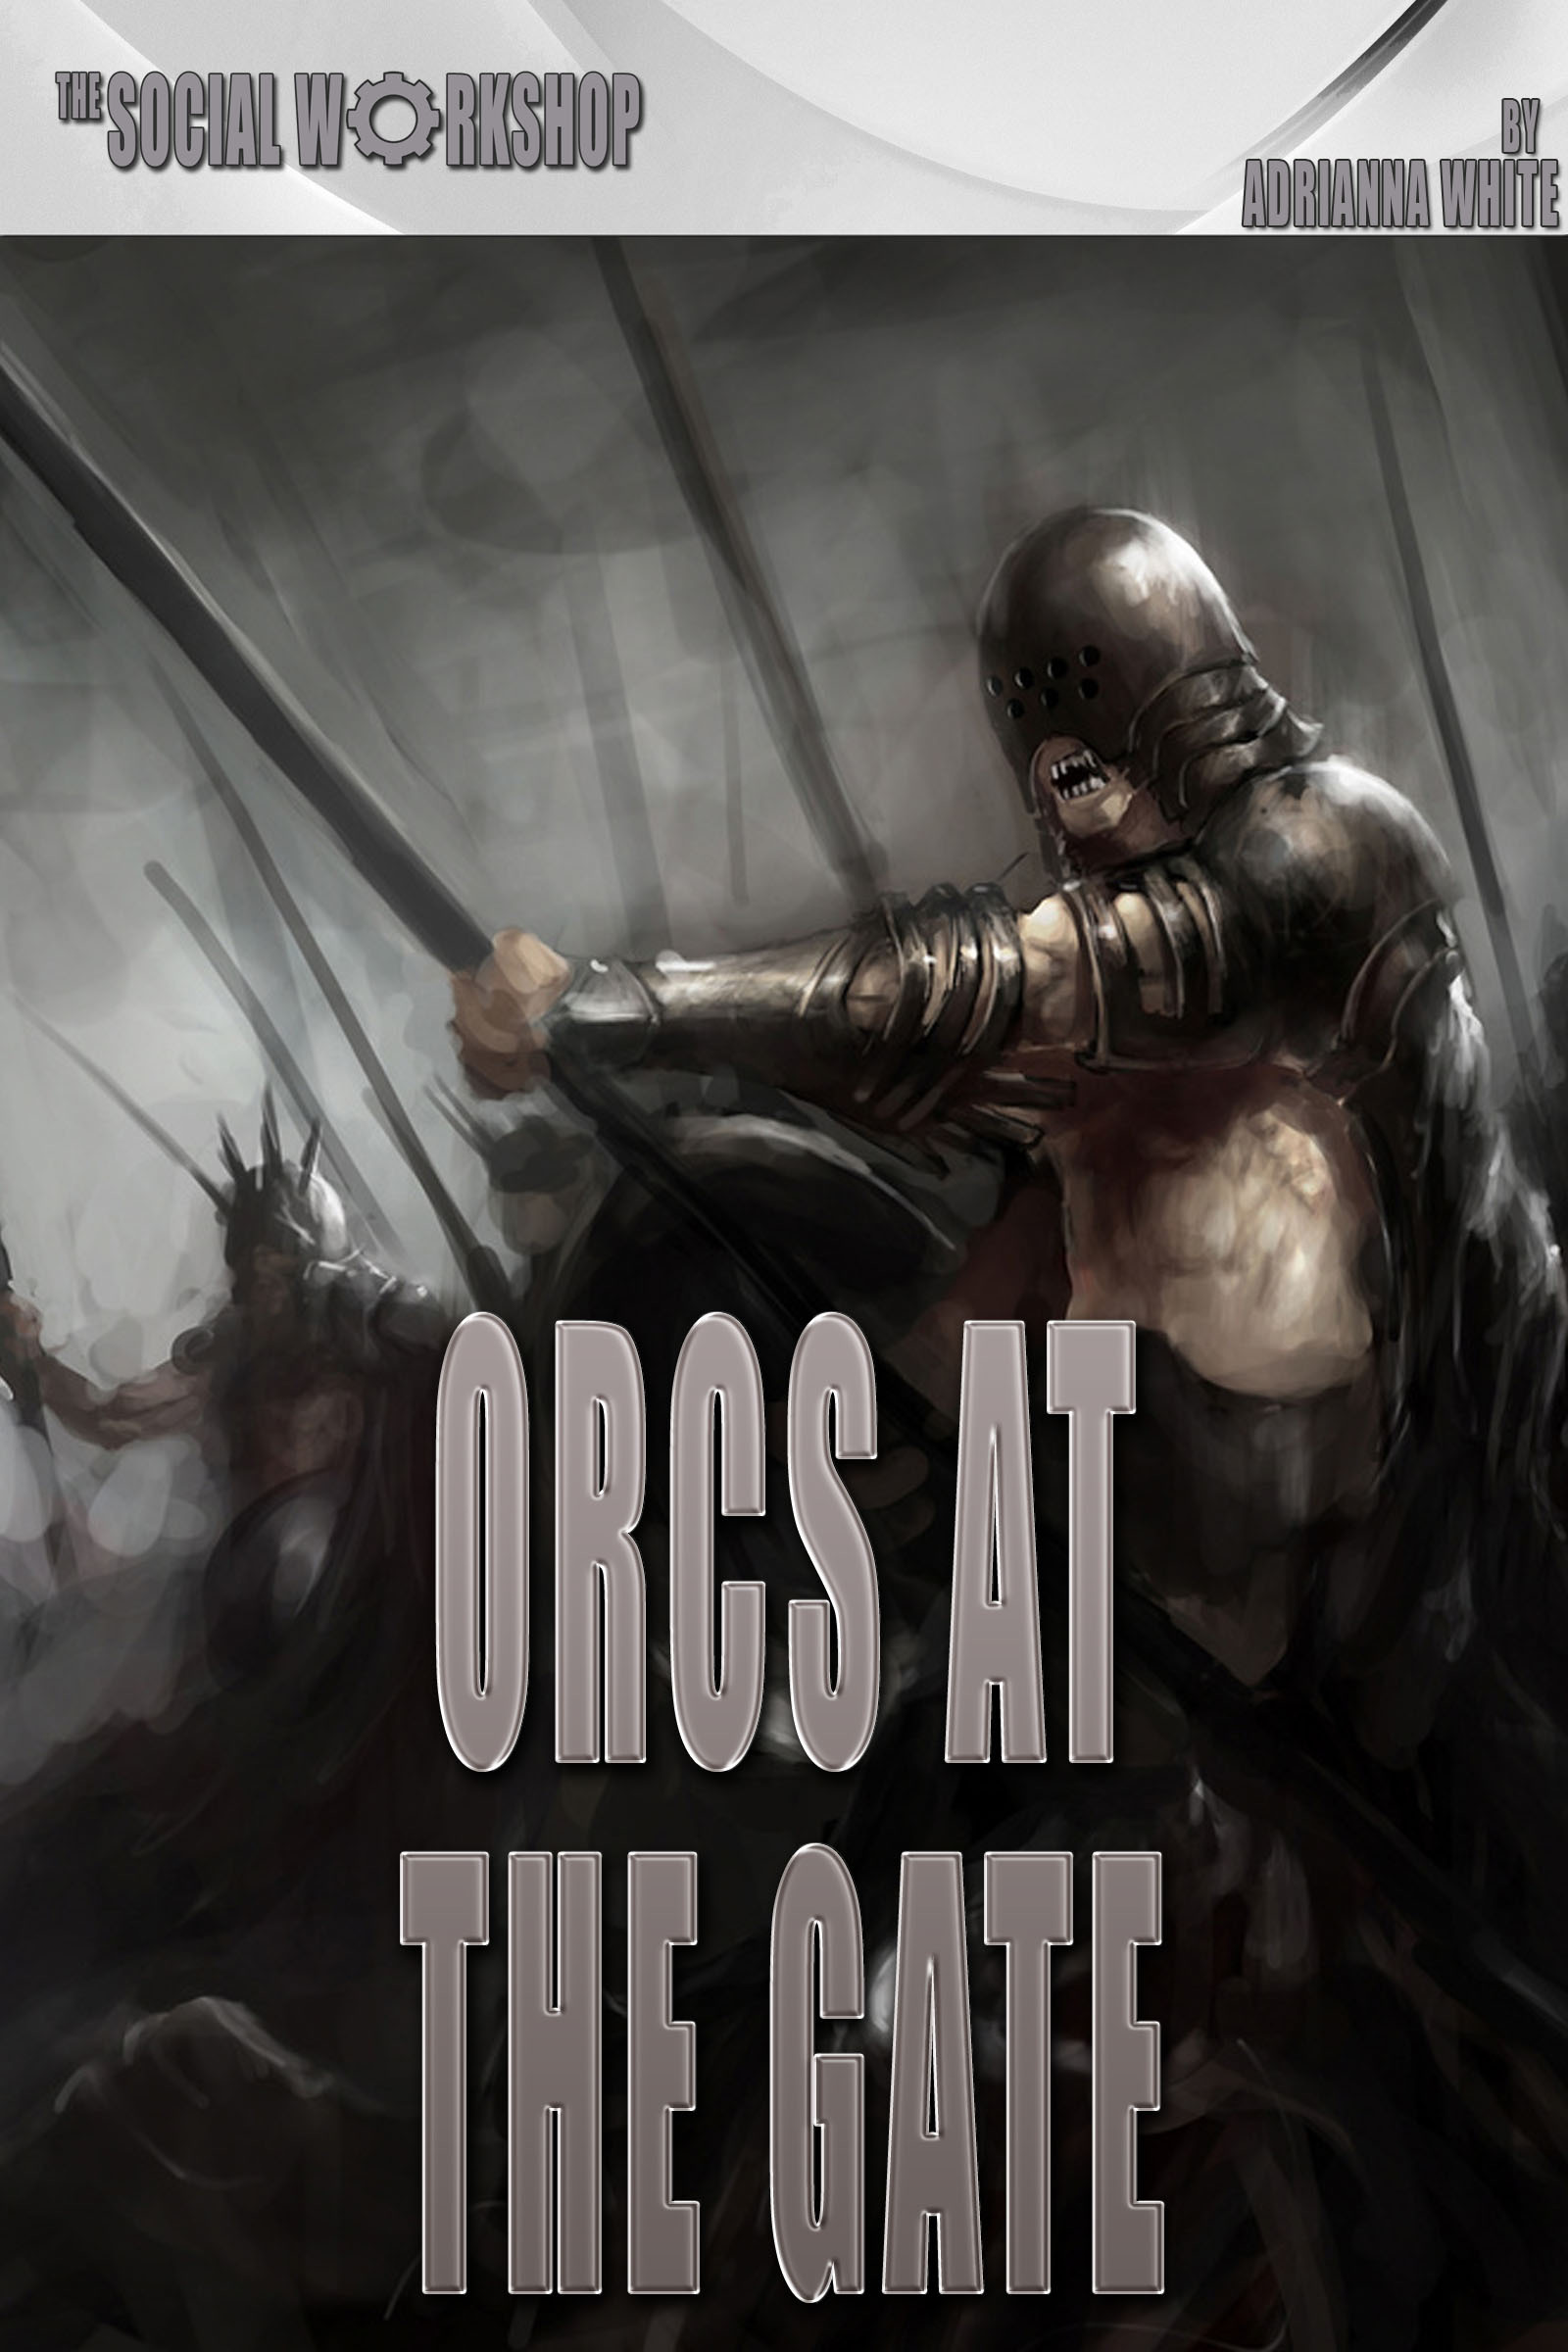 Orcs at the Gate (The Social Workshop)